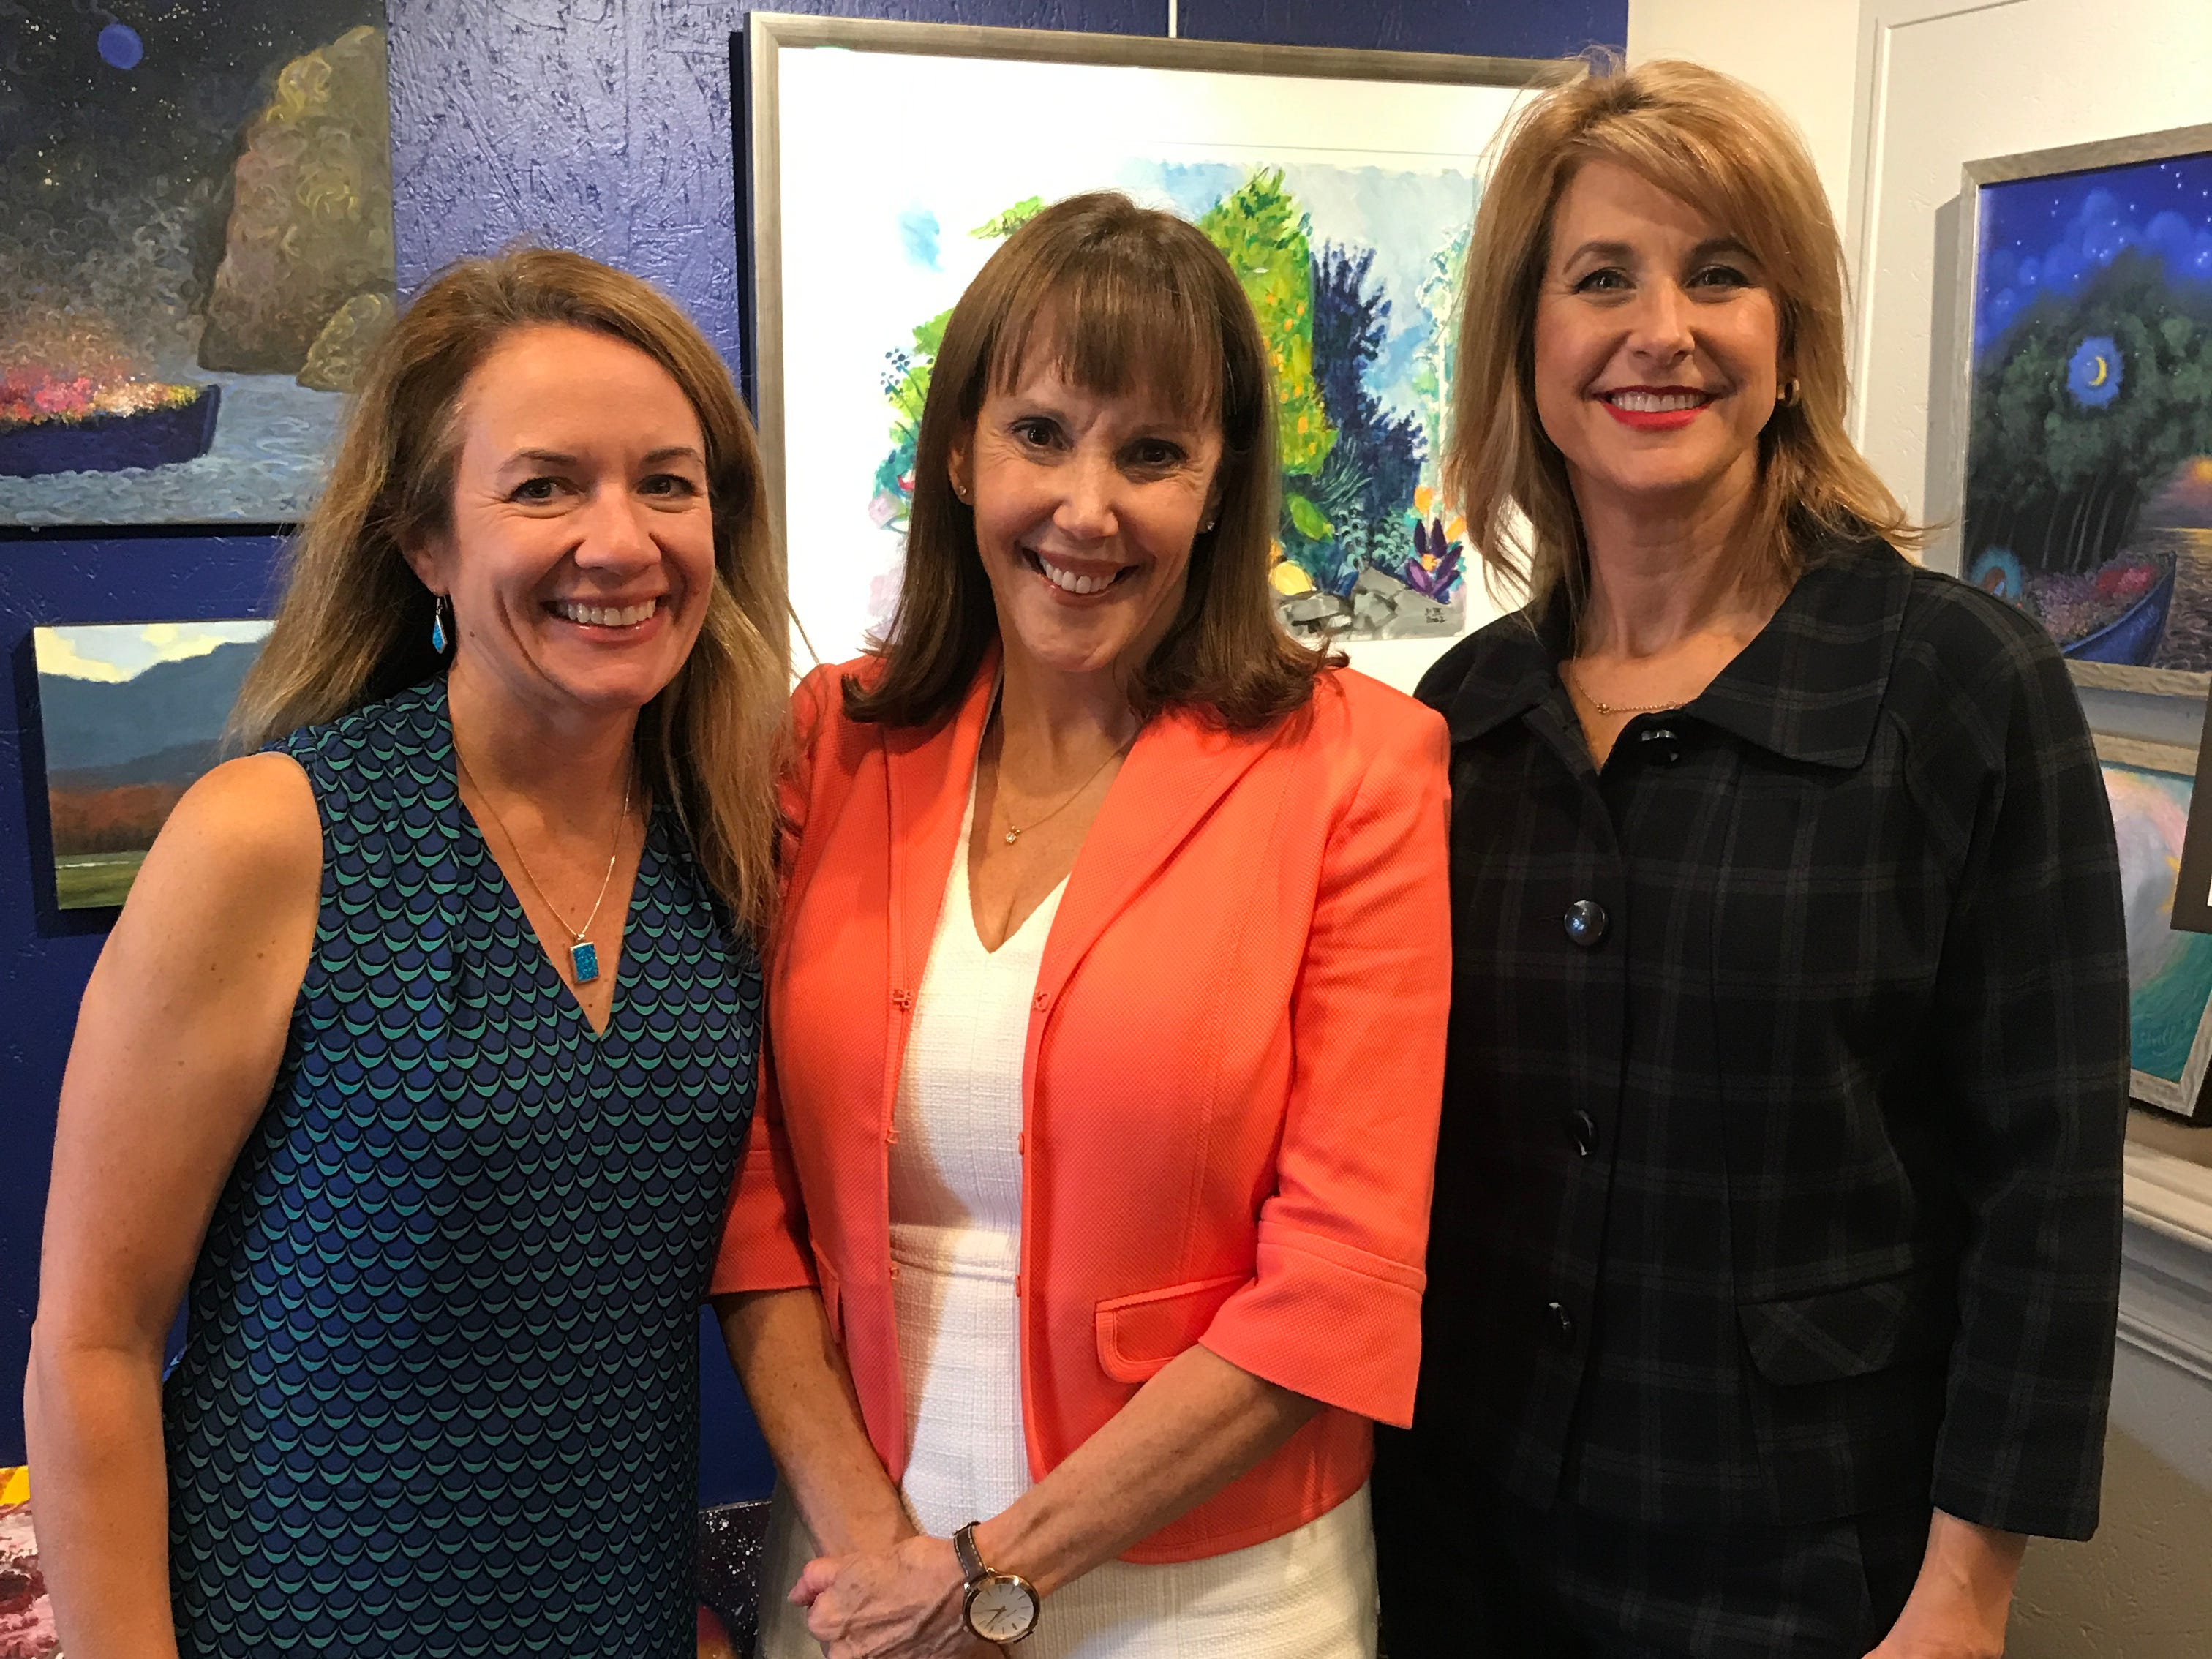 Some former McLean Little League softball moms are keeping the connection going long after their daughters aged out. From left, Justine Fitzgerald, Jayne O'Donnell and Heather Covington